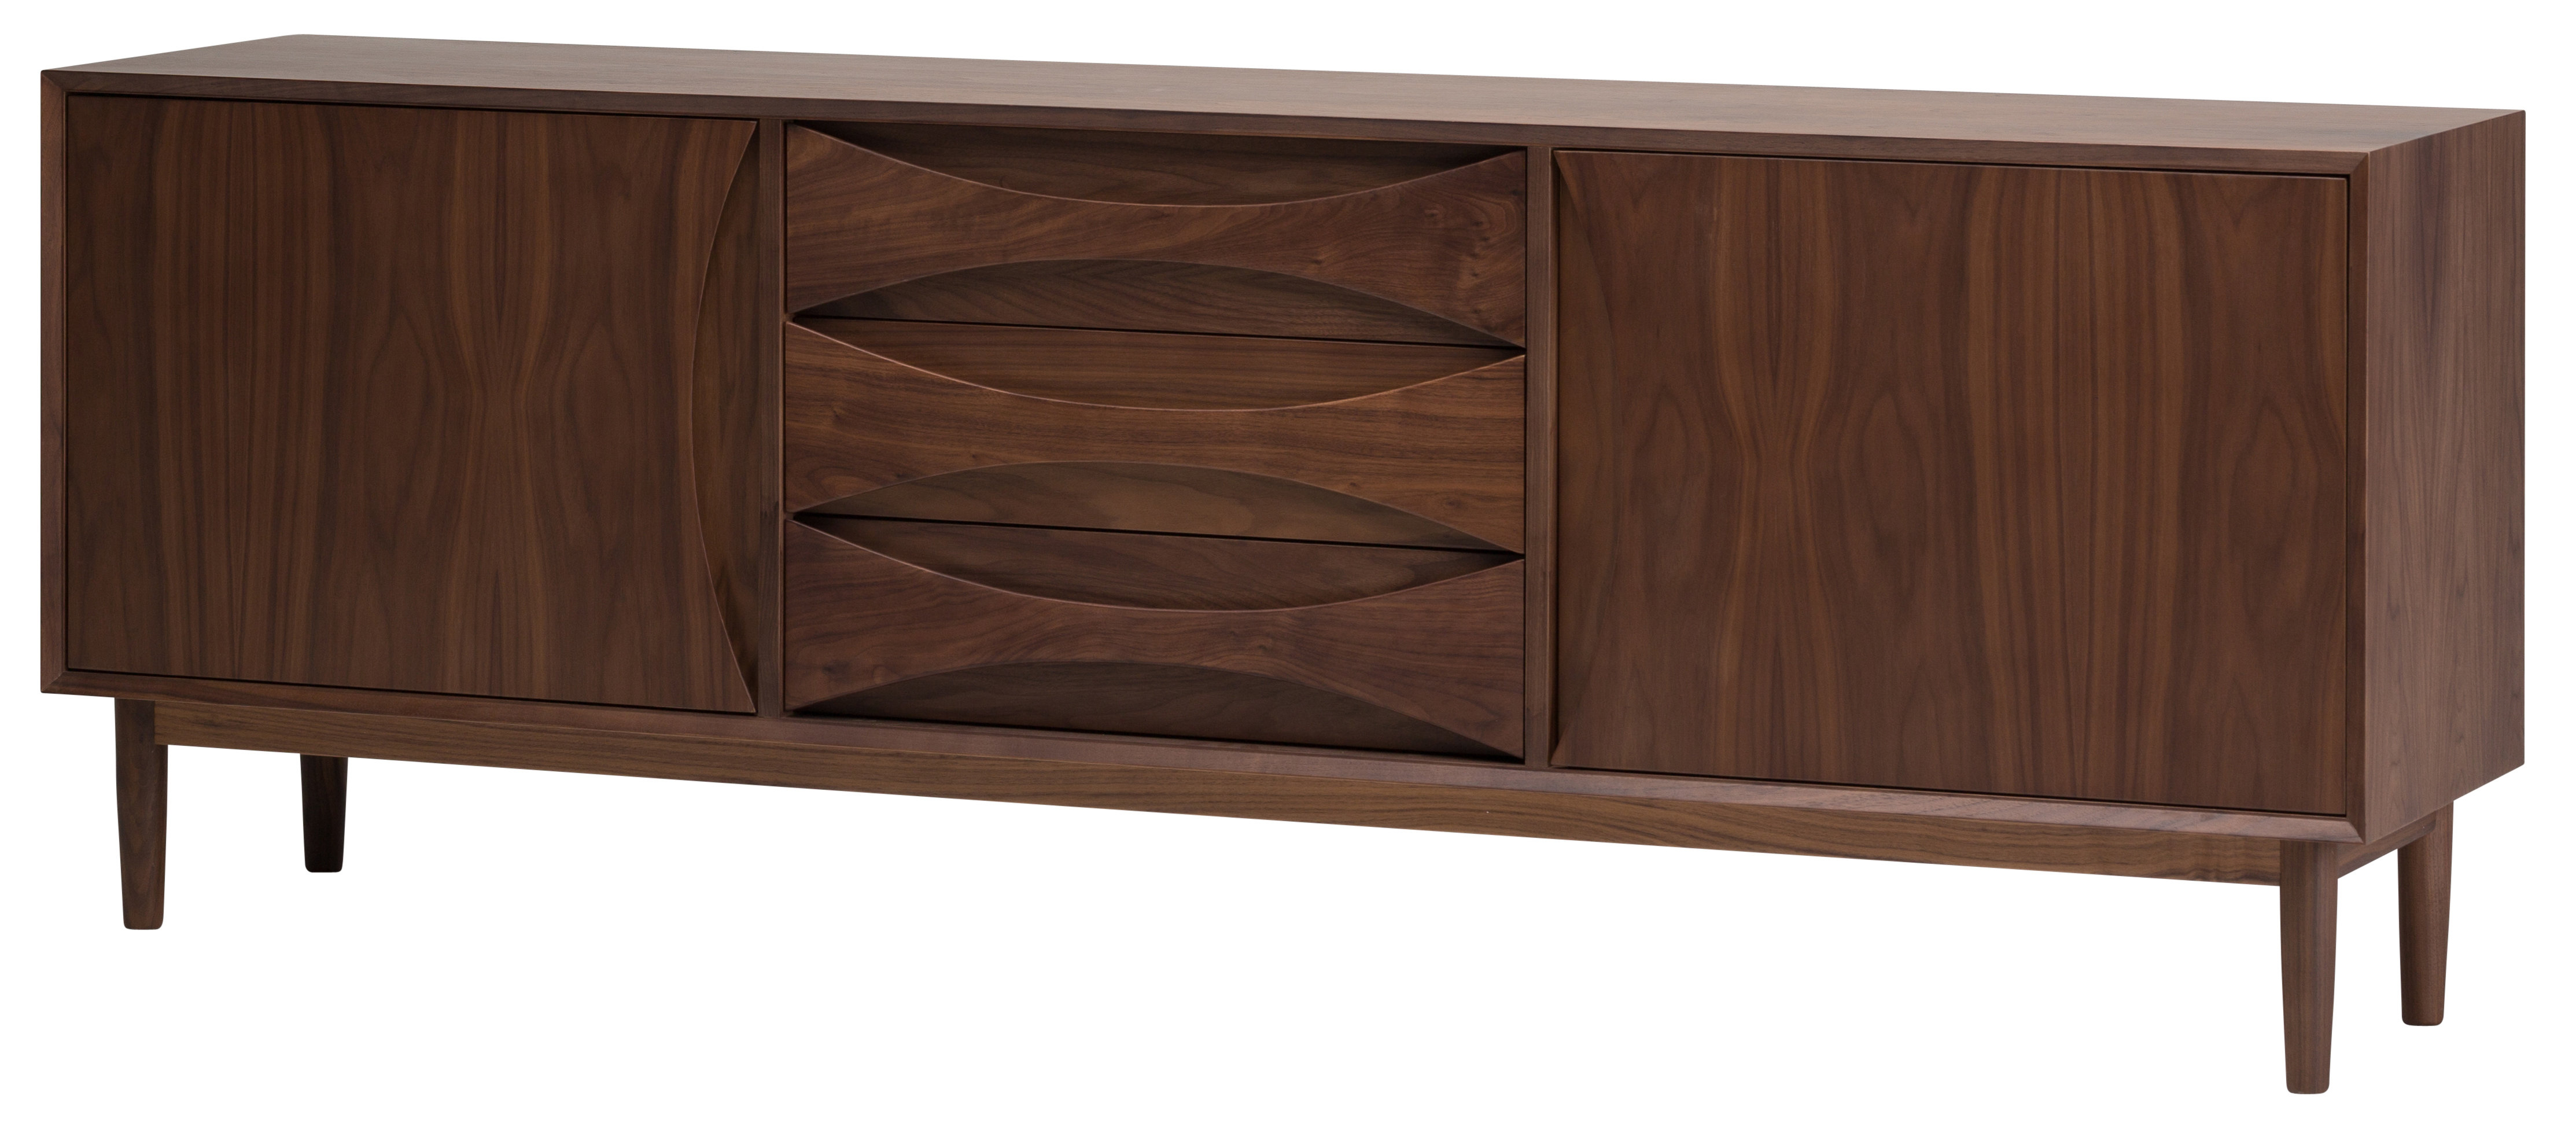 Modern & Contemporary Elyza 4 Door Credenza | Allmodern Regarding Elyza Credenzas (View 11 of 30)